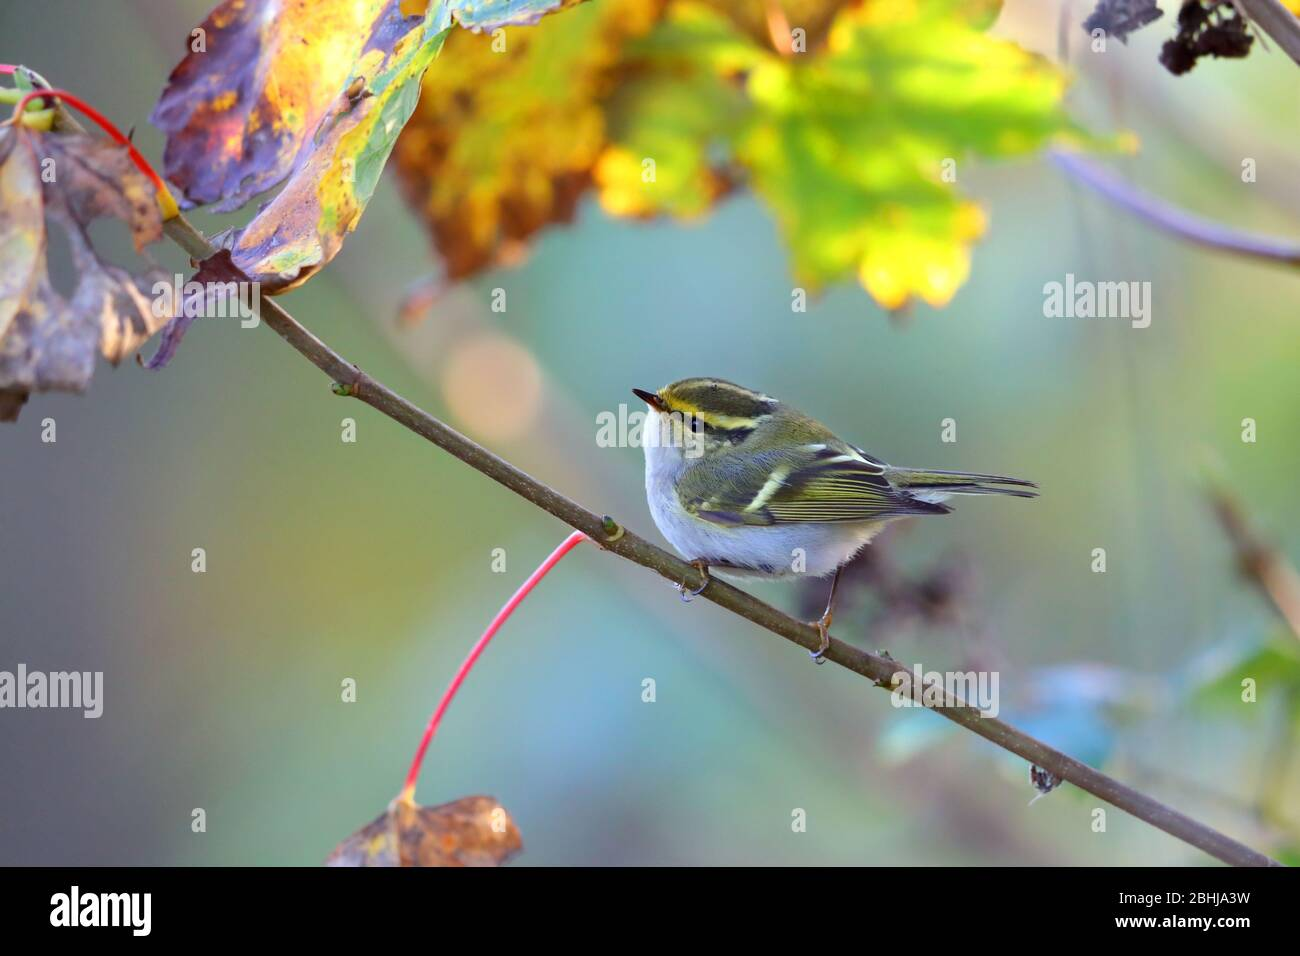 A Pallas's Leaf Warbler or Pallas's Warbler (Phylloscopus proregulus) on the coast of Essex in November Stock Photo